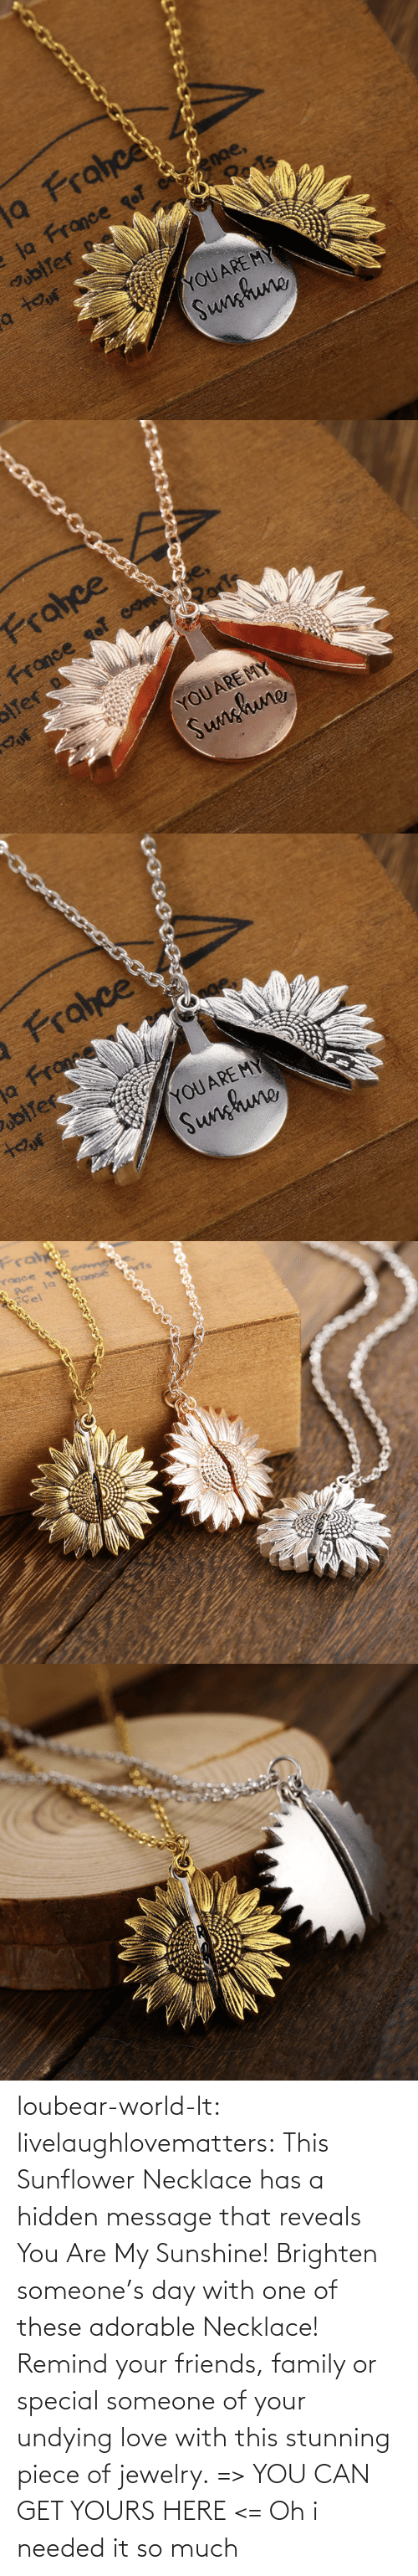 Here: loubear-world-lt: livelaughlovematters:   This Sunflower Necklace has a hidden message that reveals You Are My Sunshine! Brighten someone's day with one of these adorable Necklace! Remind your friends, family or special someone of your undying love with this stunning piece of jewelry. => YOU CAN GET YOURS HERE <=    Oh i needed it so much